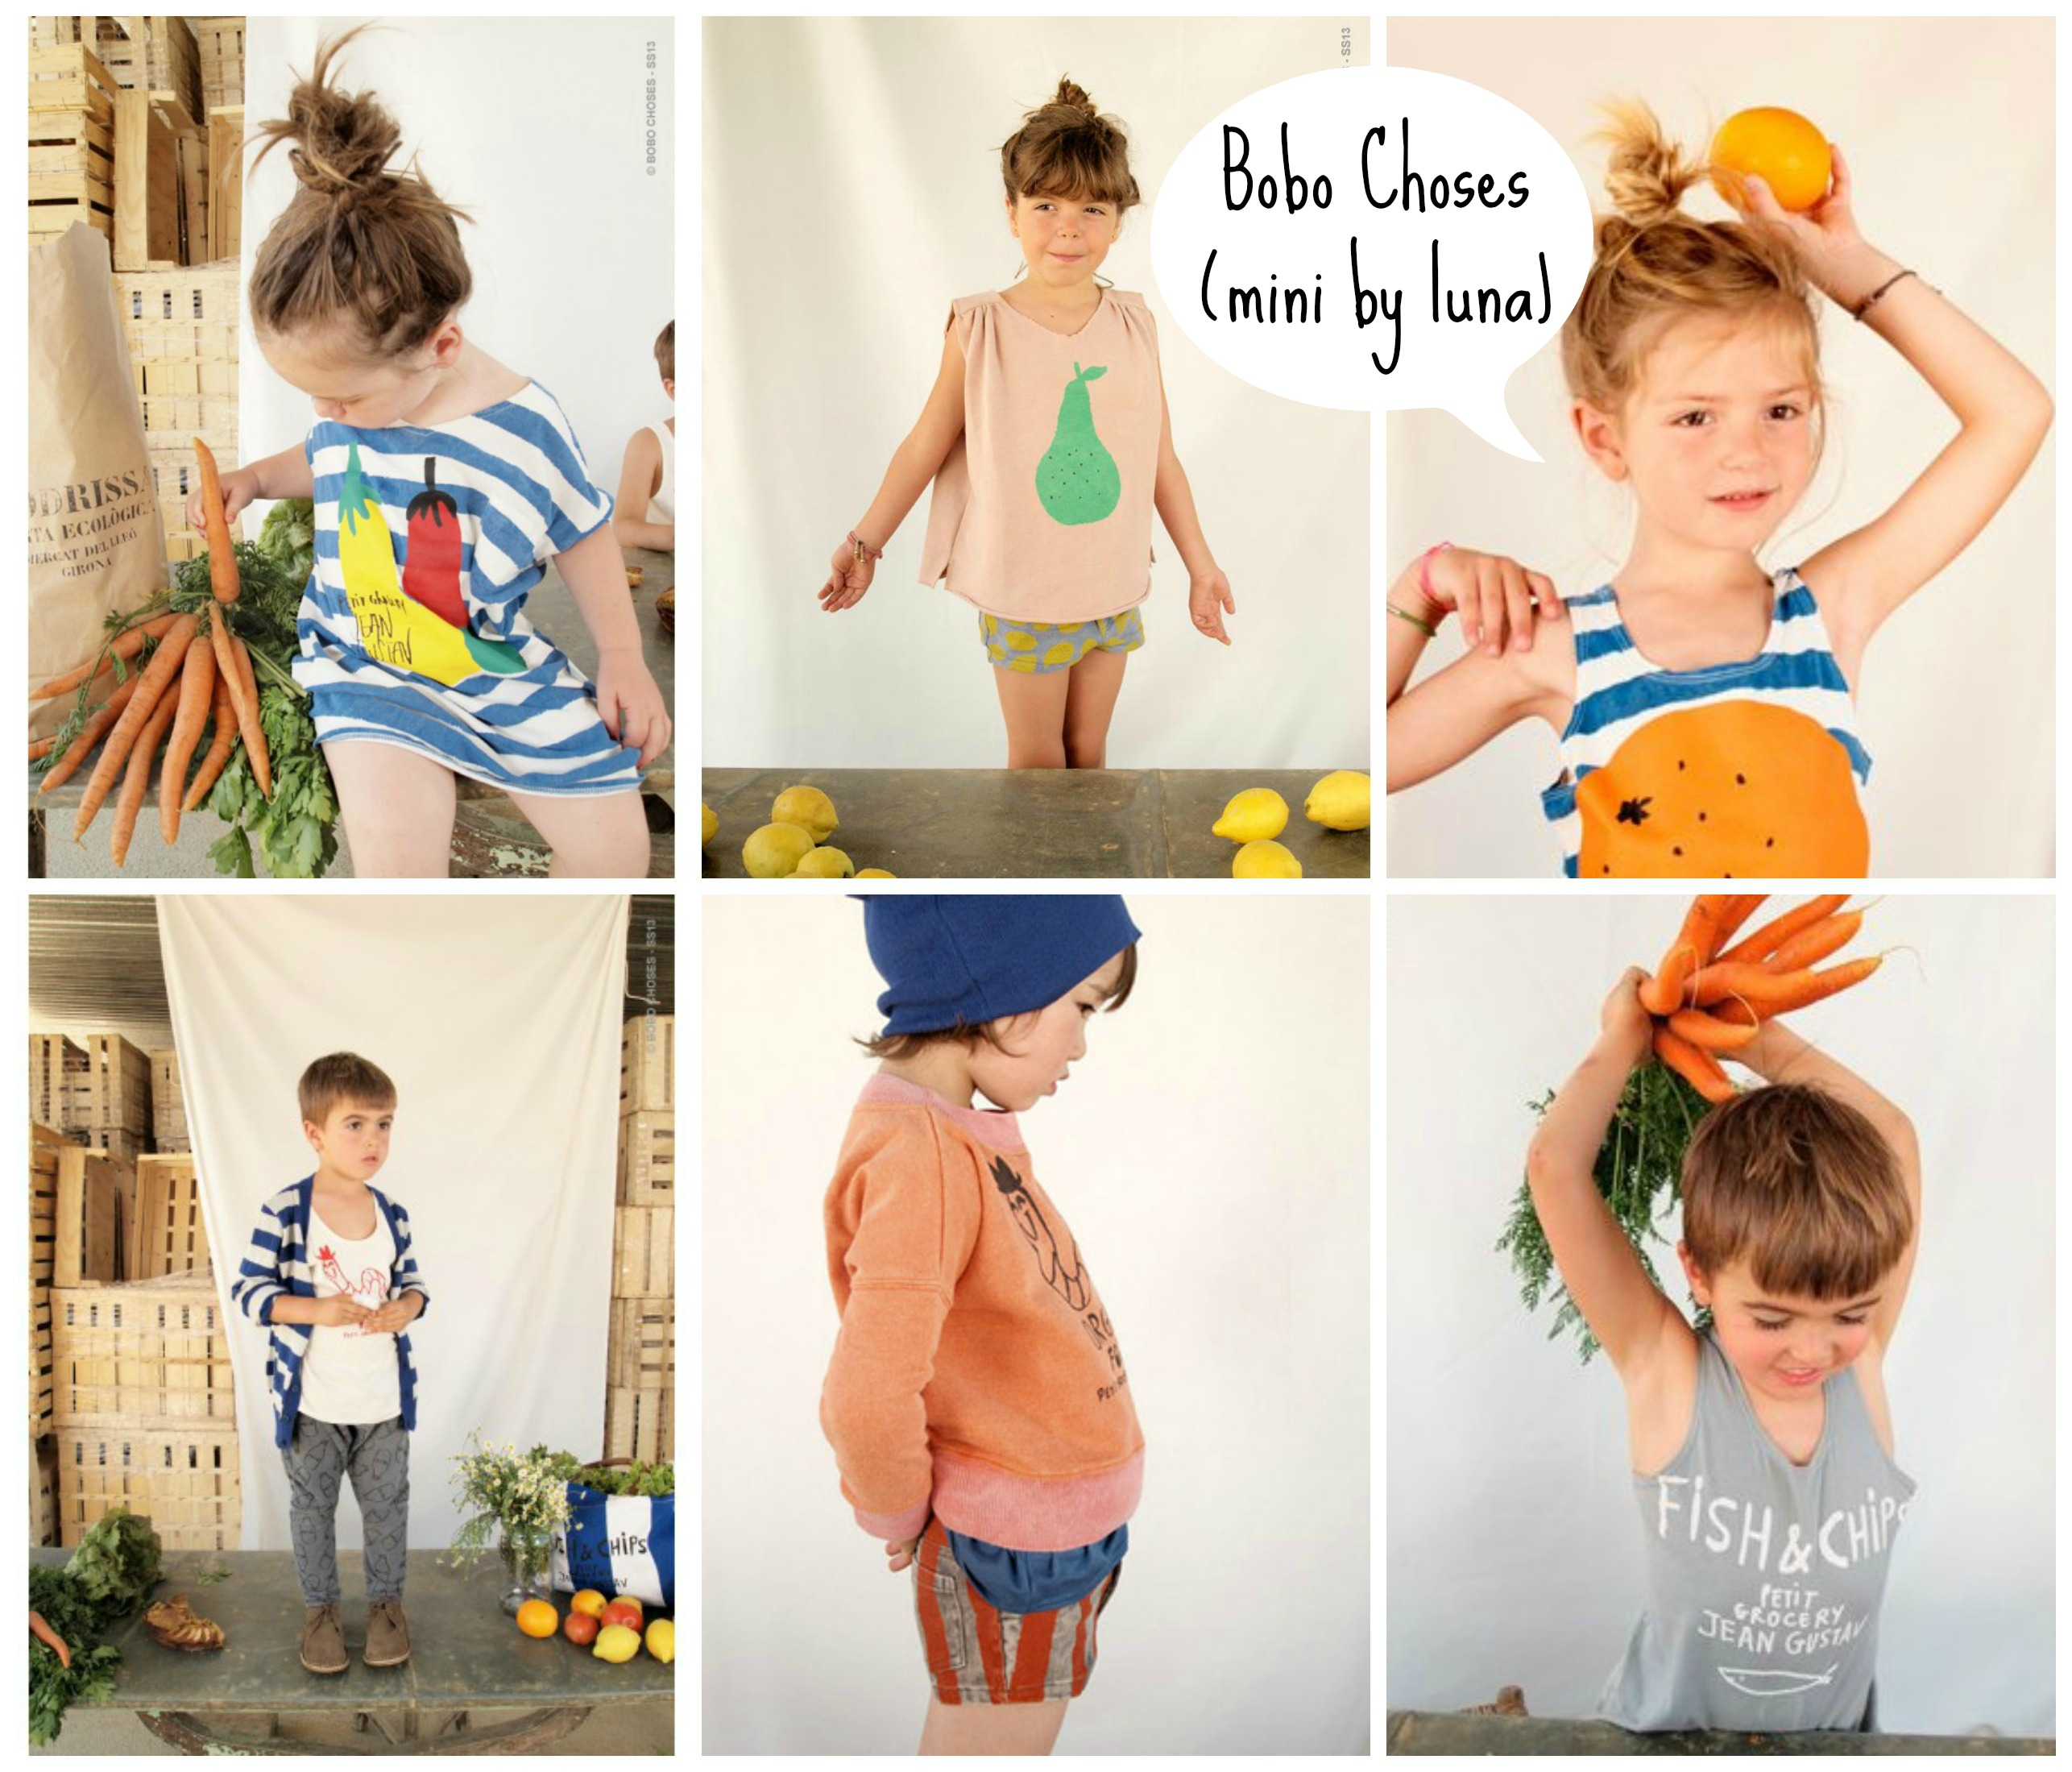 Bobo Choses mimi by luna